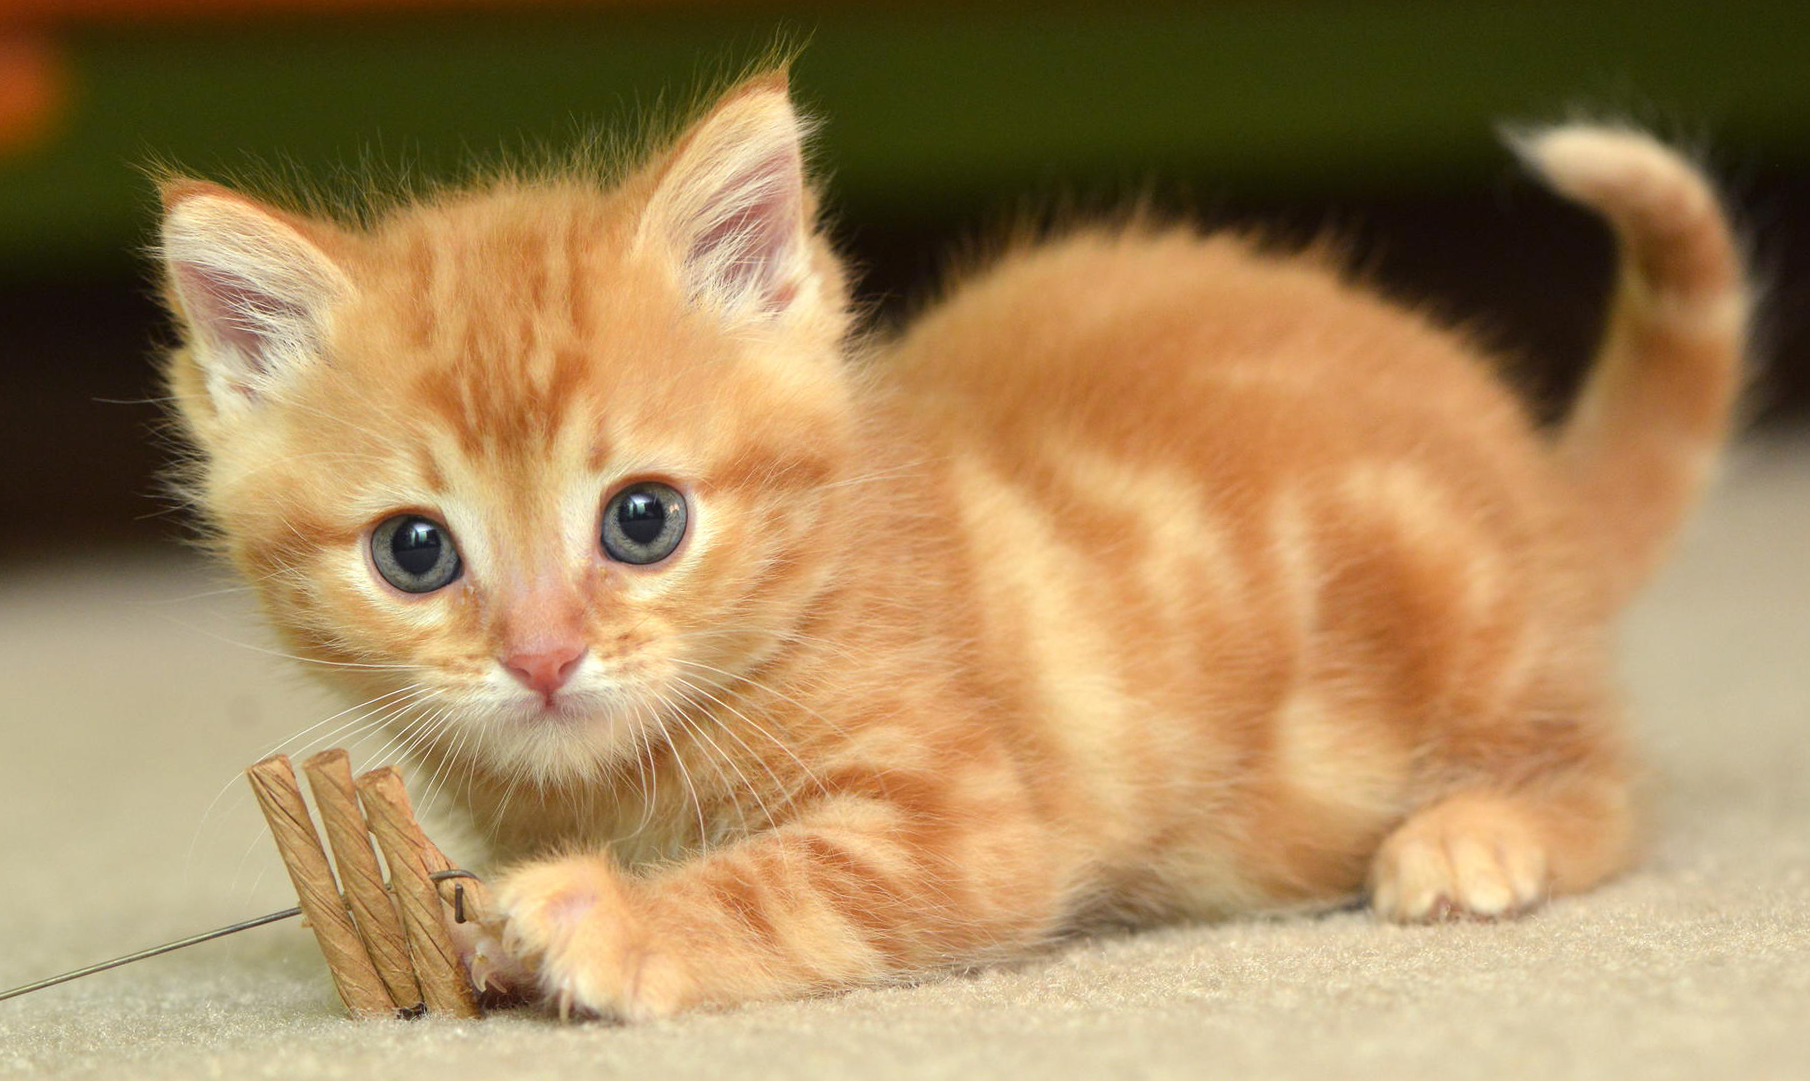 Download cute baby cat hd wallpaper gallery - Cute kittens hd images ...